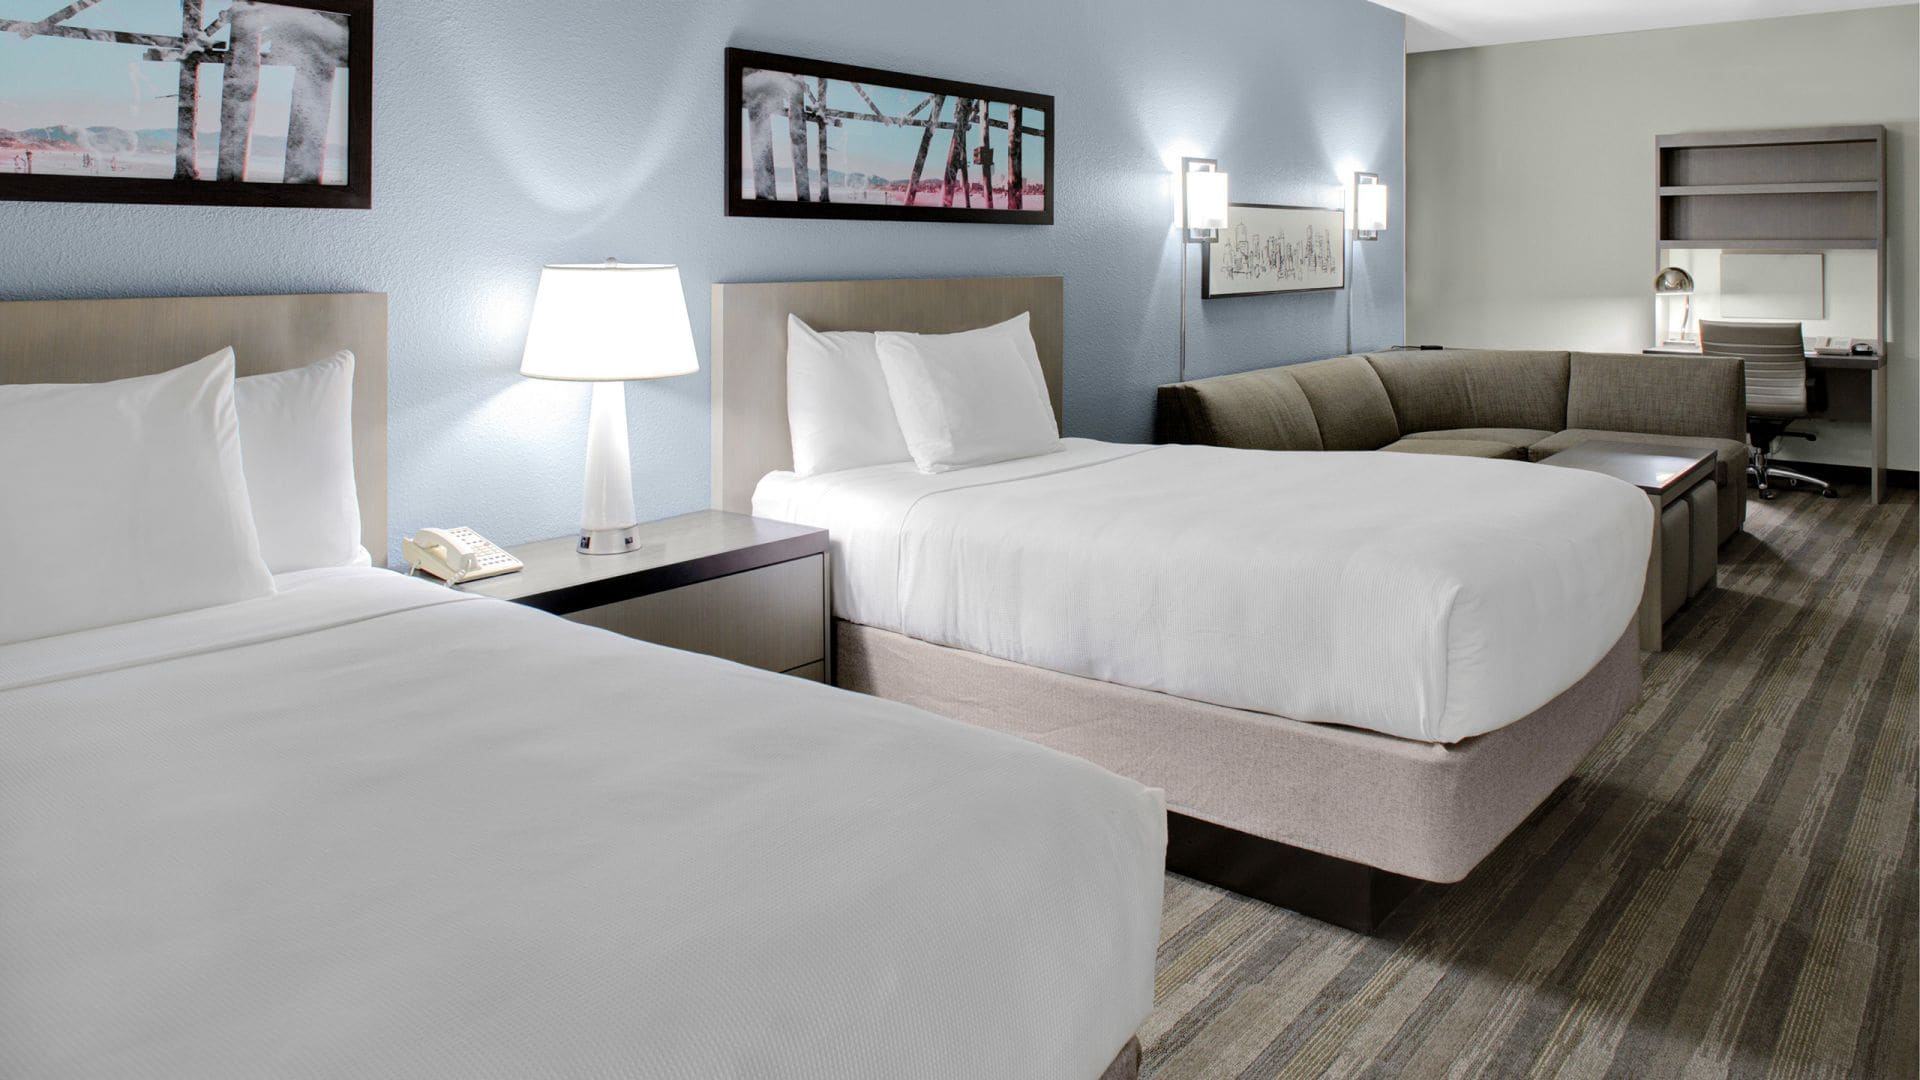 Hyatt House Dallas / Lincoln Park Double Studio